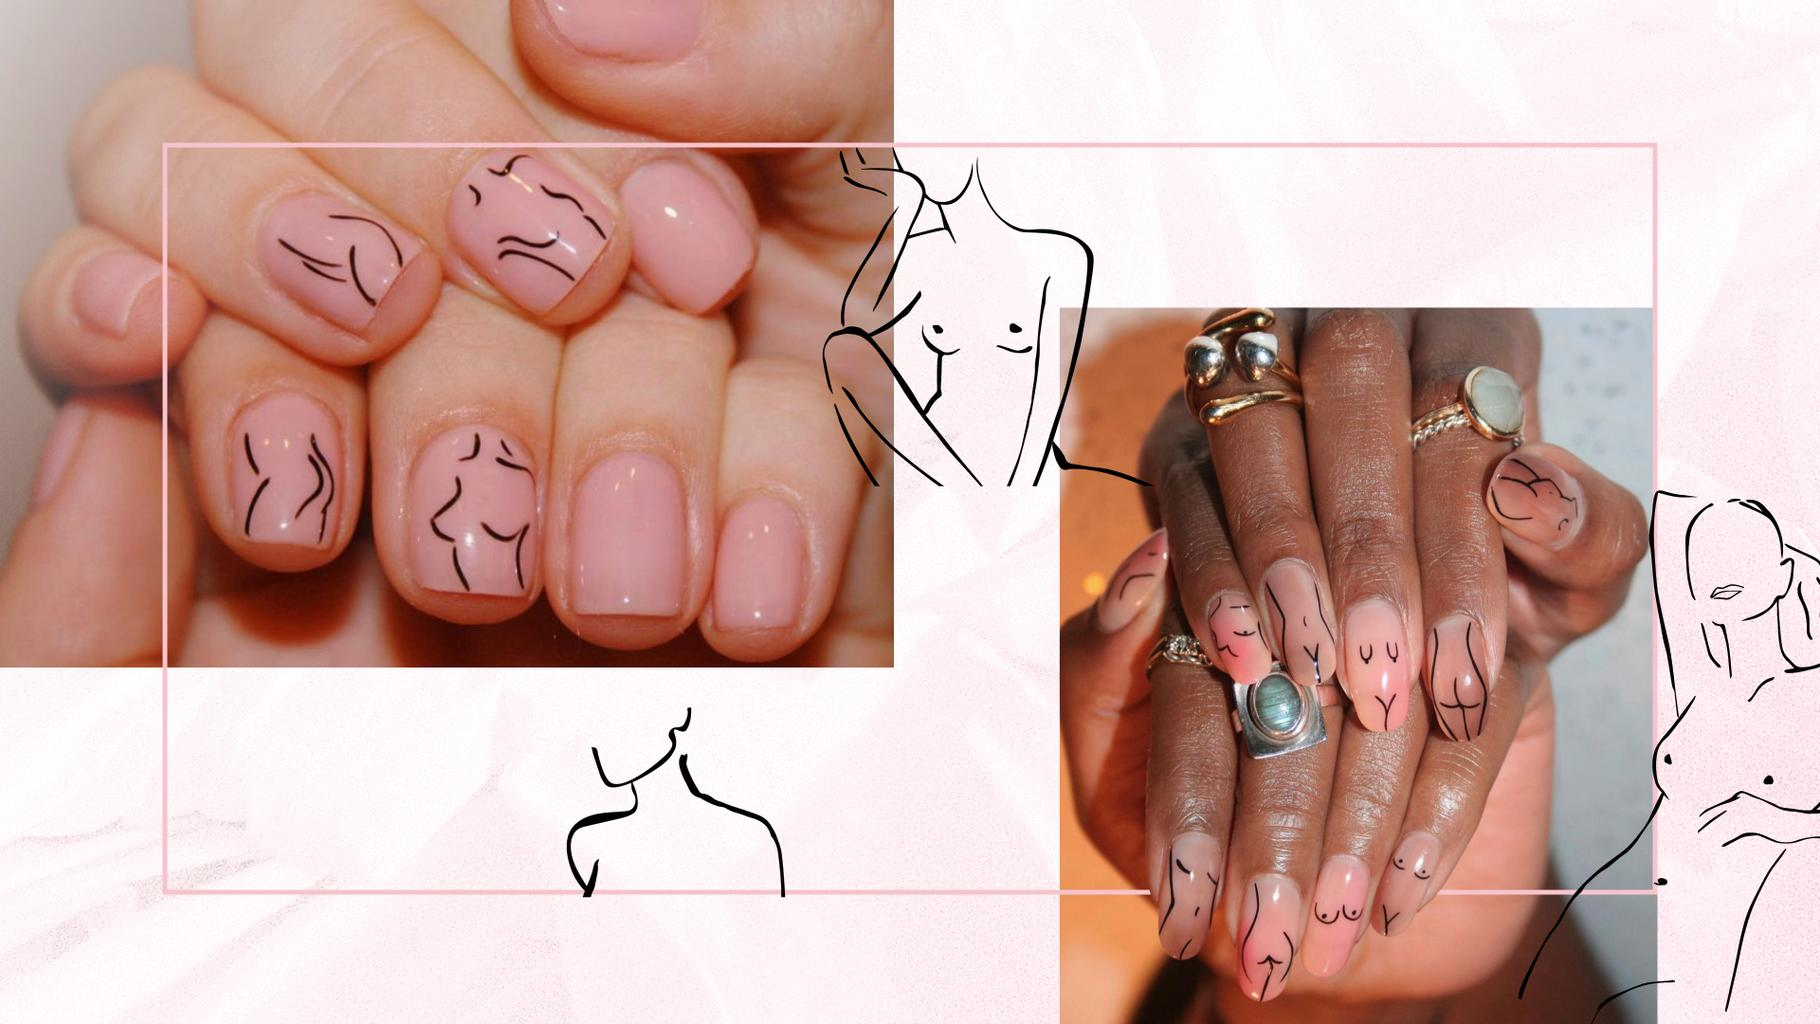 Nudes On Nails Why One Nail Artist On Instagram Has Us In A Spin ...